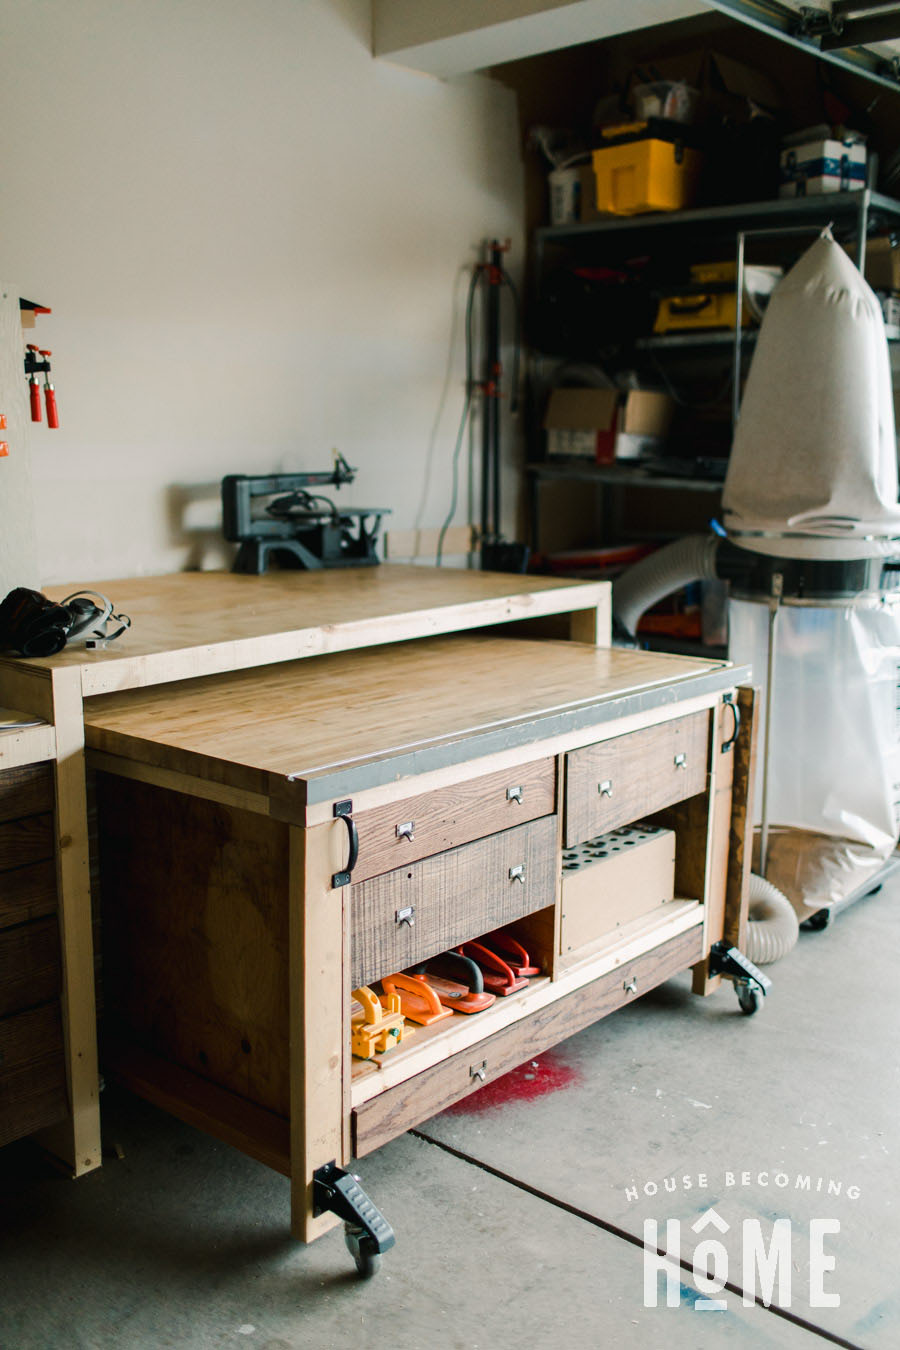 Assembly Table Storage Under Workbench